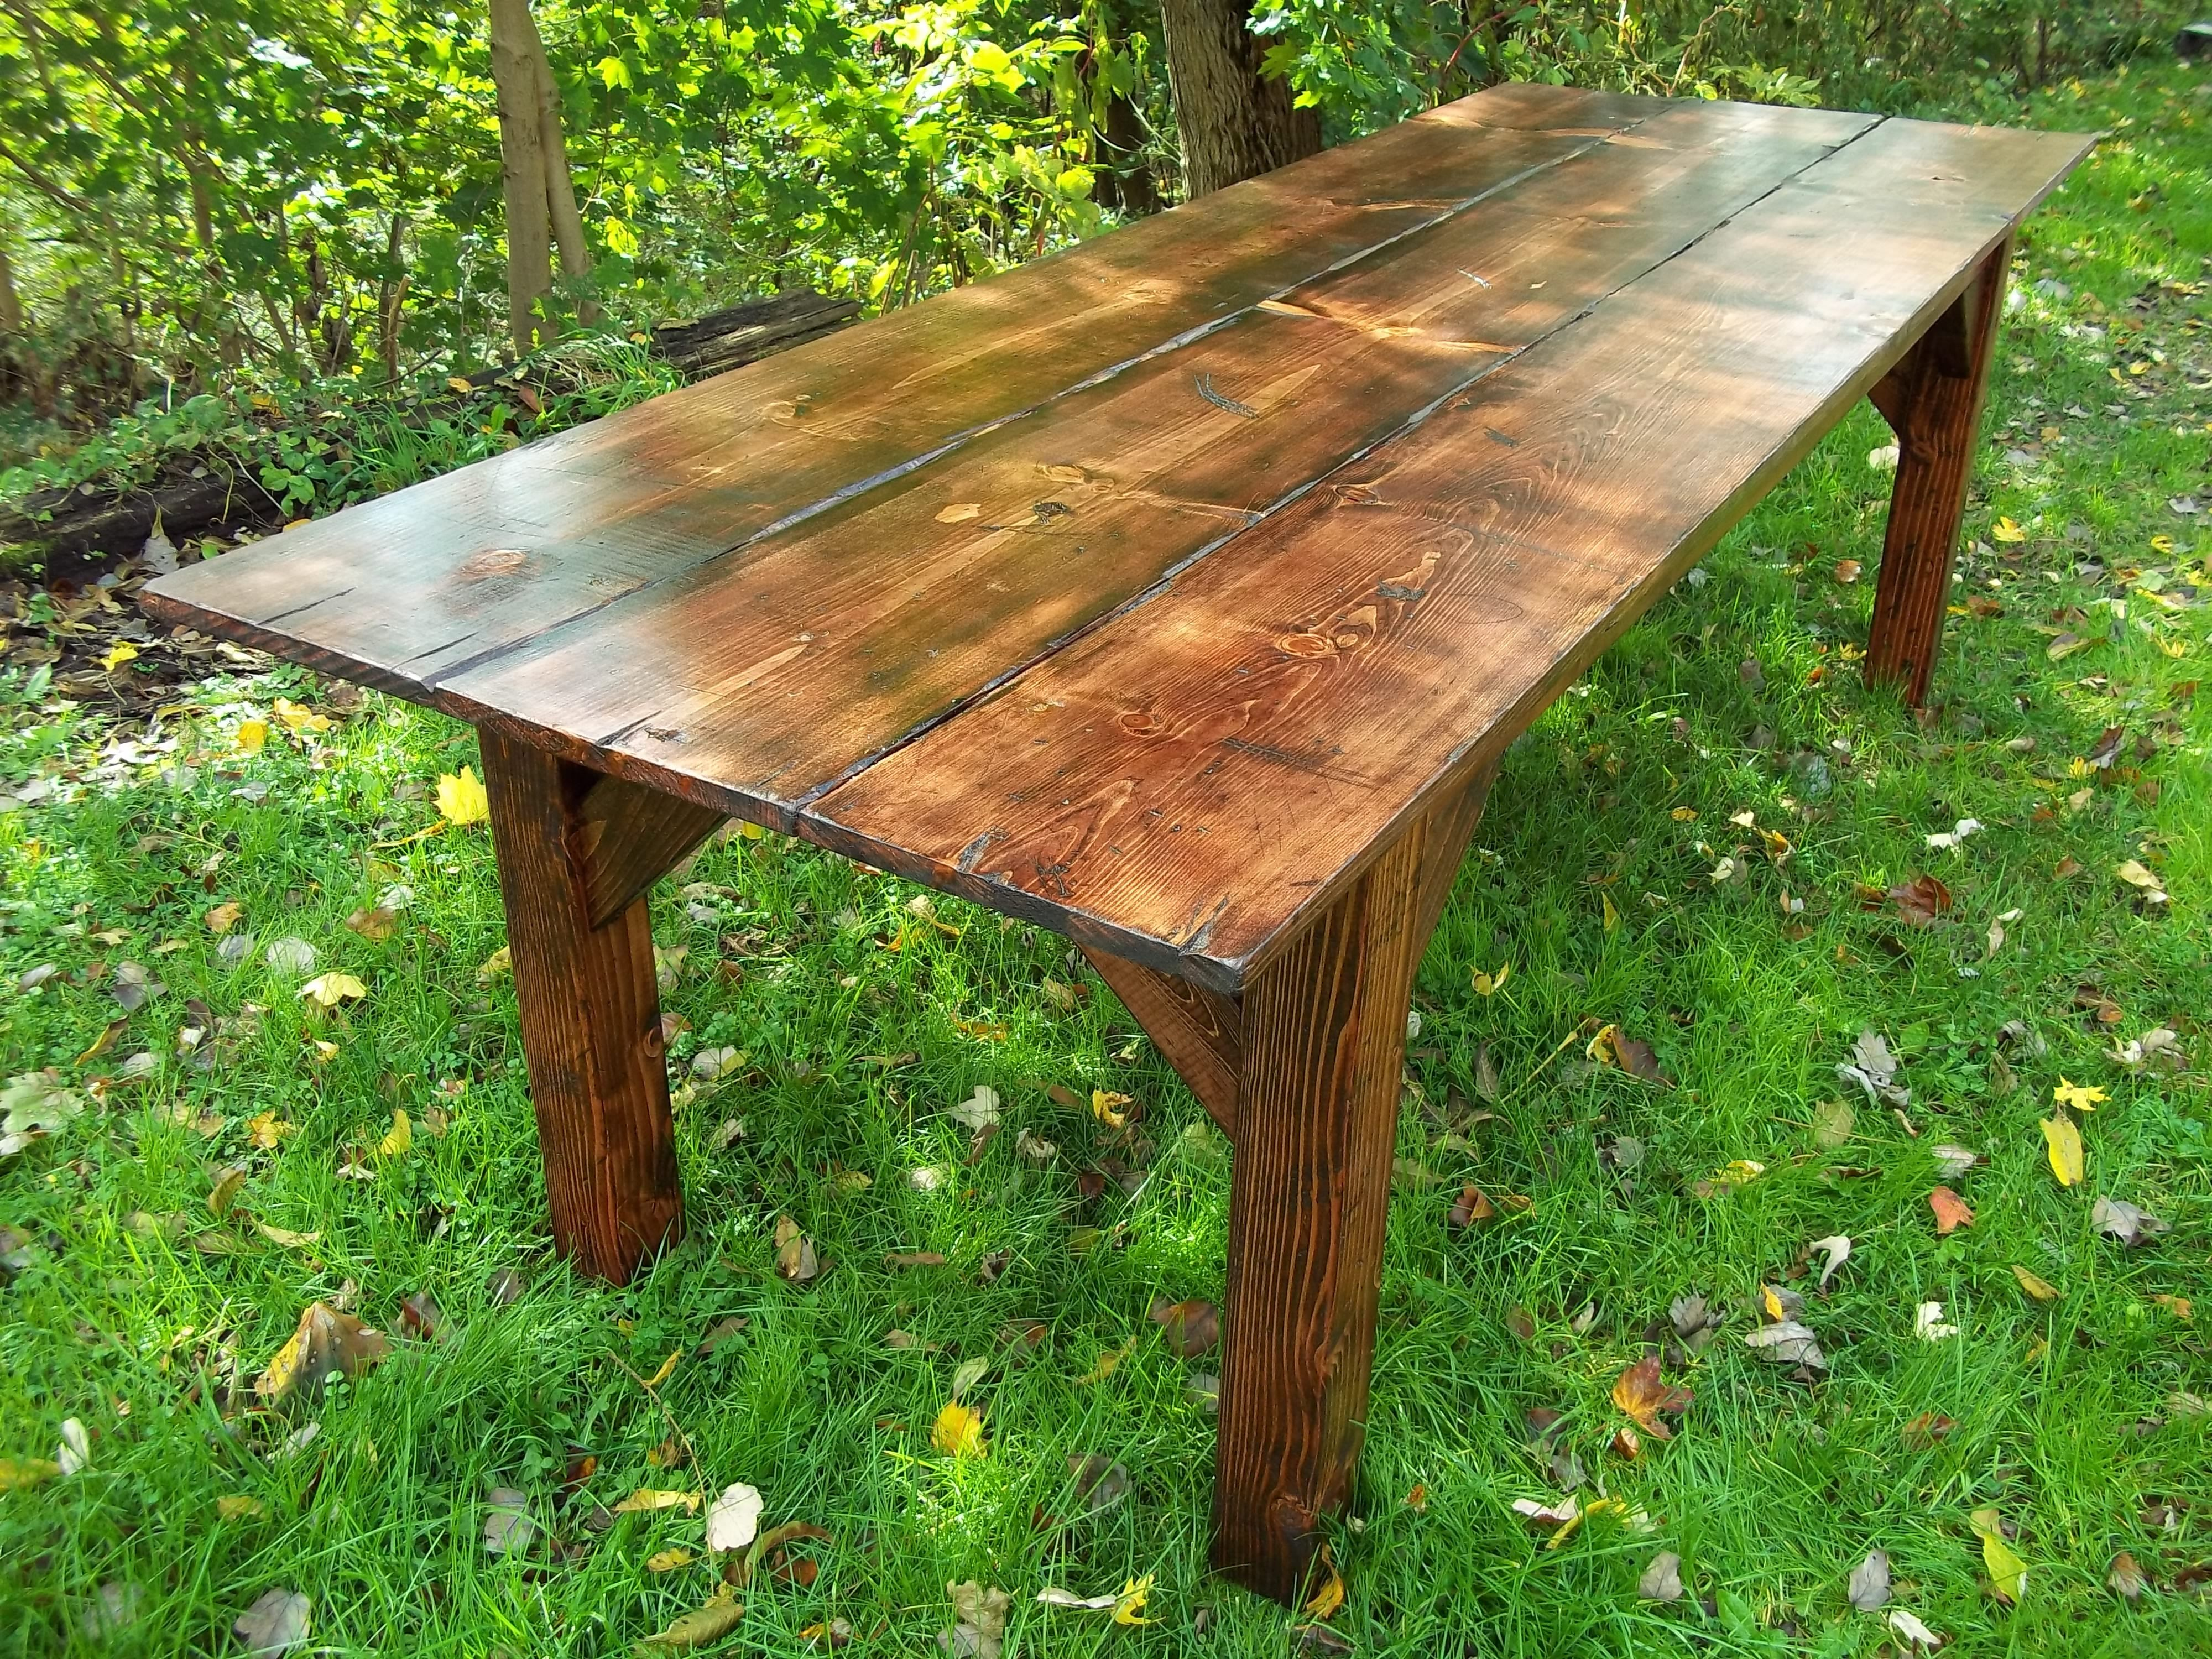 Table Rental Barnes Handcrafted Farmhouse Tables (With